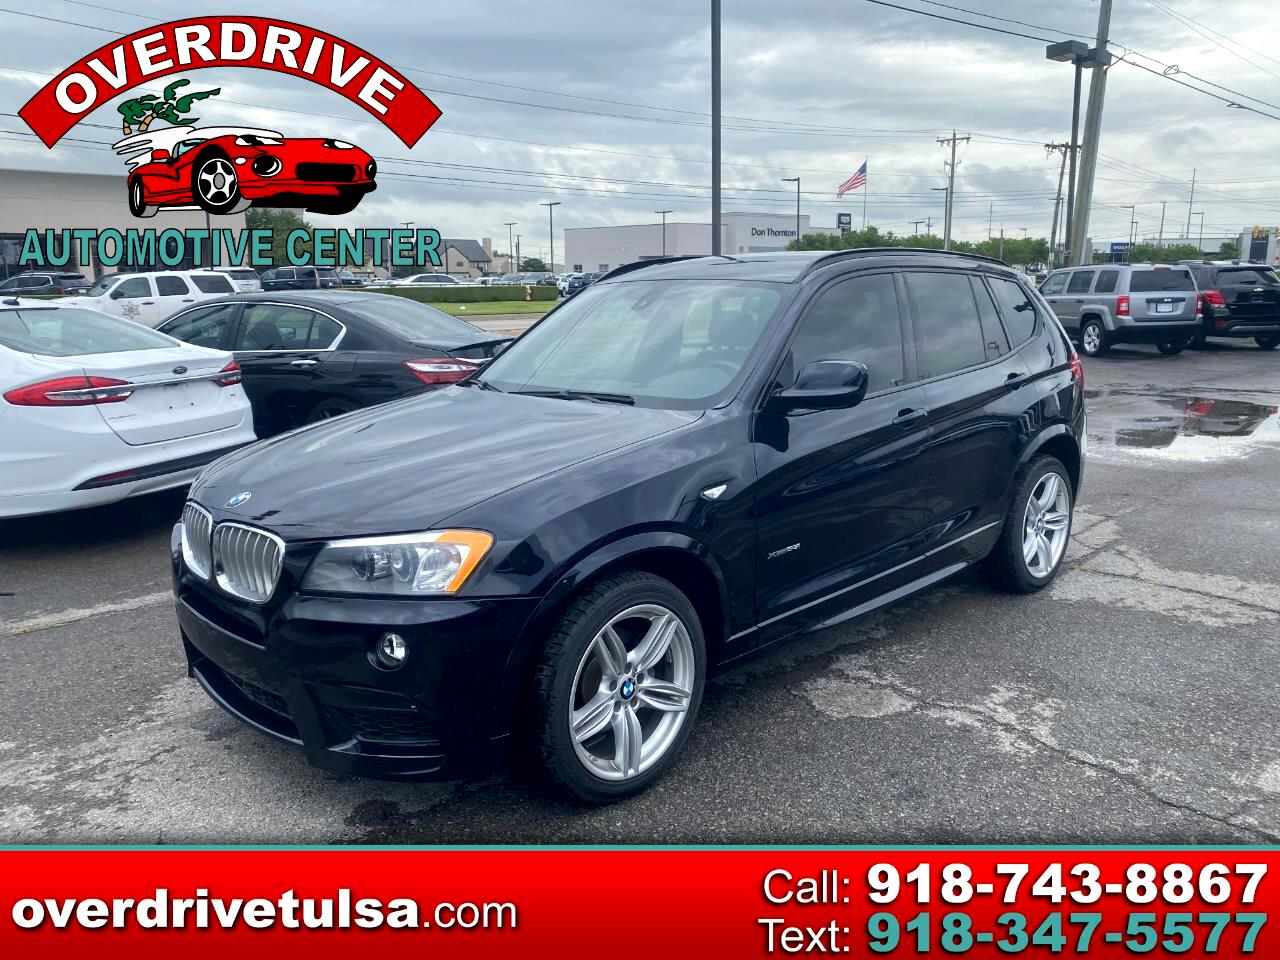 BMW X3 AWD 4dr xDrive35i 2014